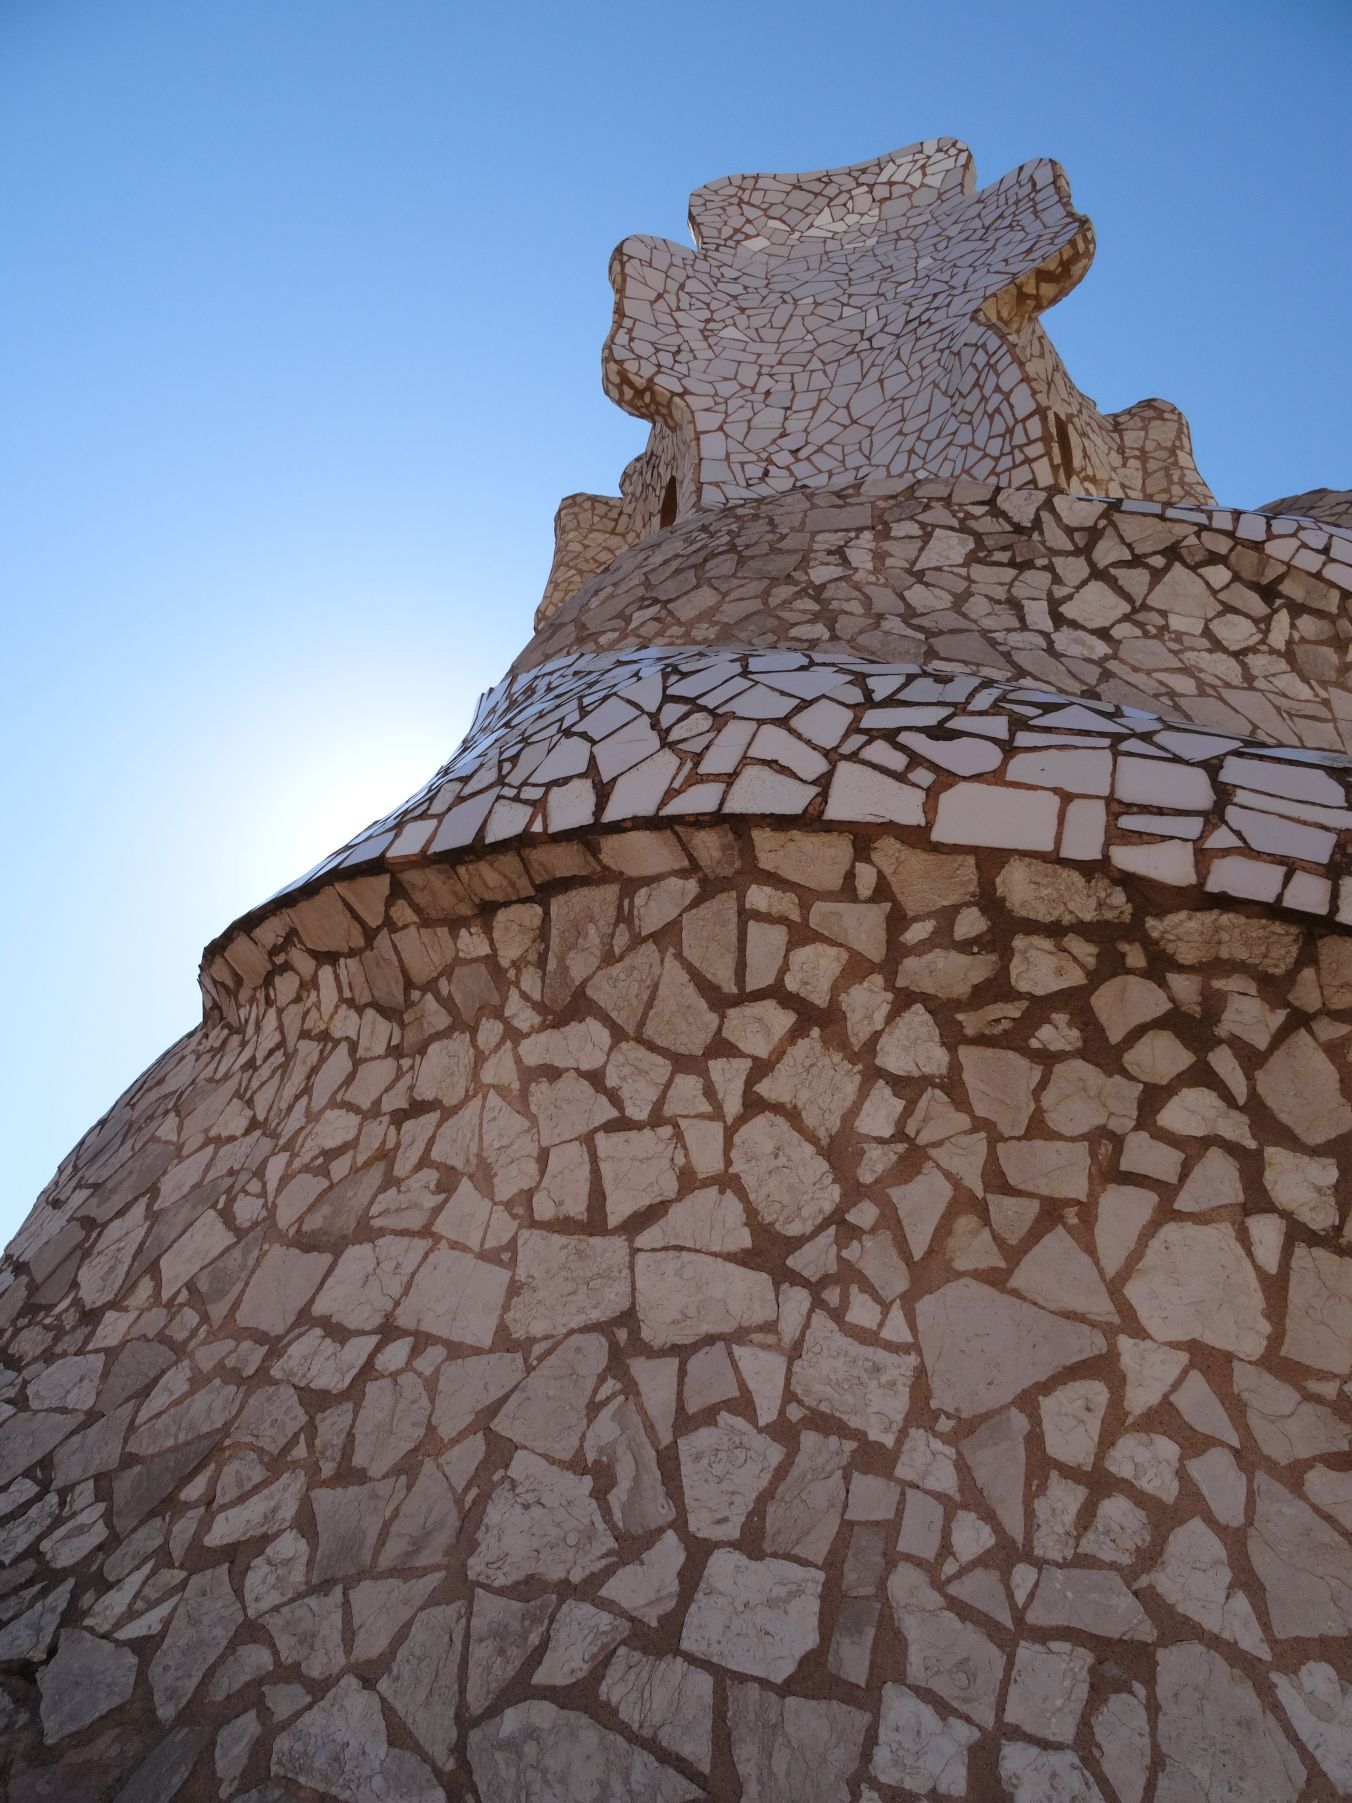 Sculpture on the roof of La Pedrera / Casa Mila, Barcelona